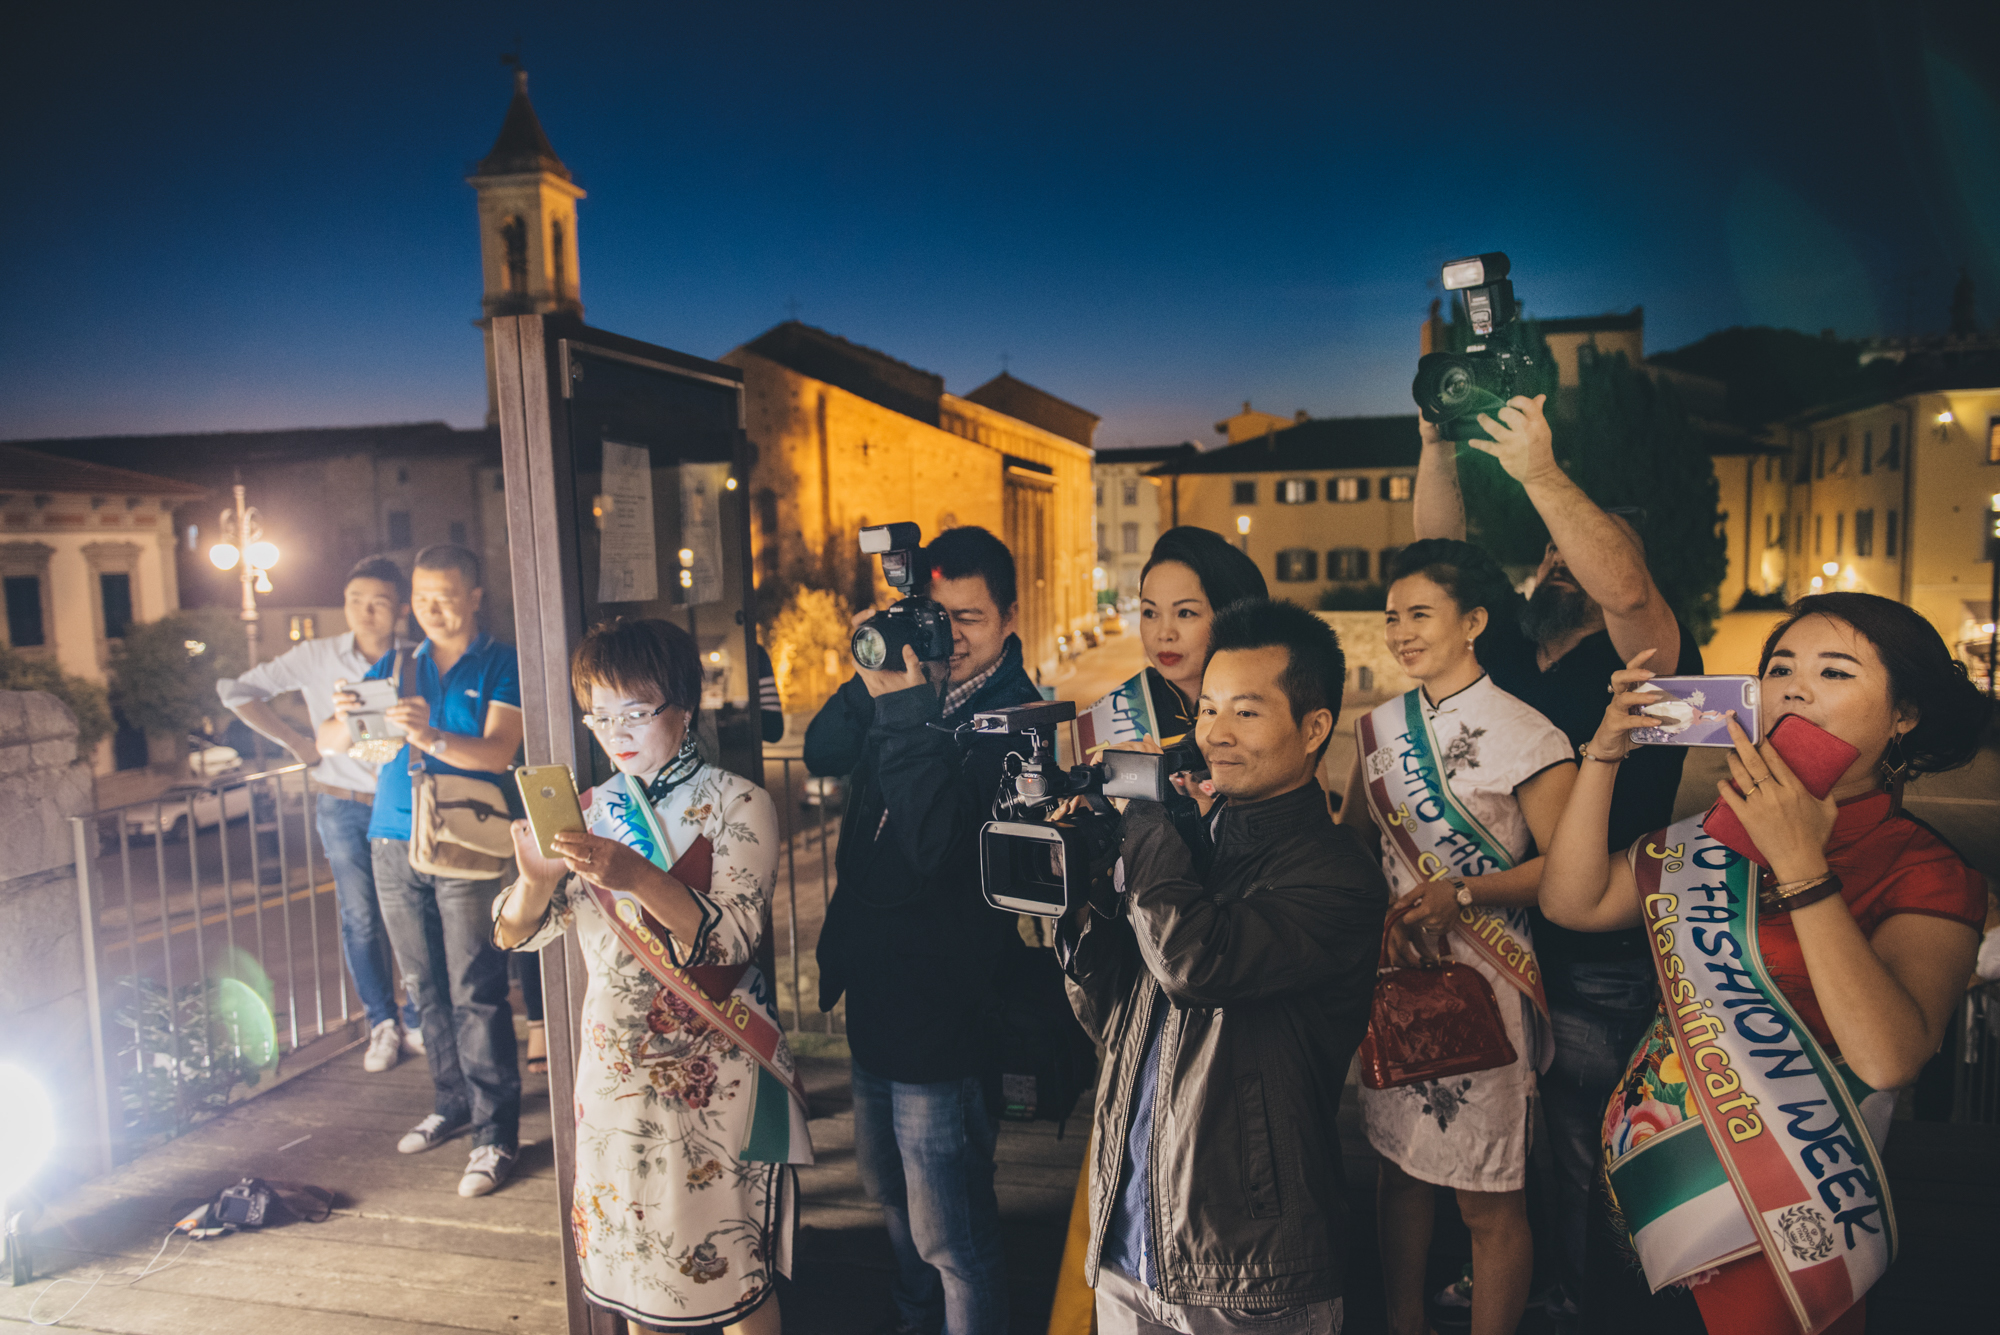 """Prato, July 2016. Models, photographers and reporters attend a photocall at the Castello dell'Imperatore, one of the main landmarks in Central Prato, during """"Prato Fashion Week"""", an event promoting local Chinese fast-fashion businesses."""